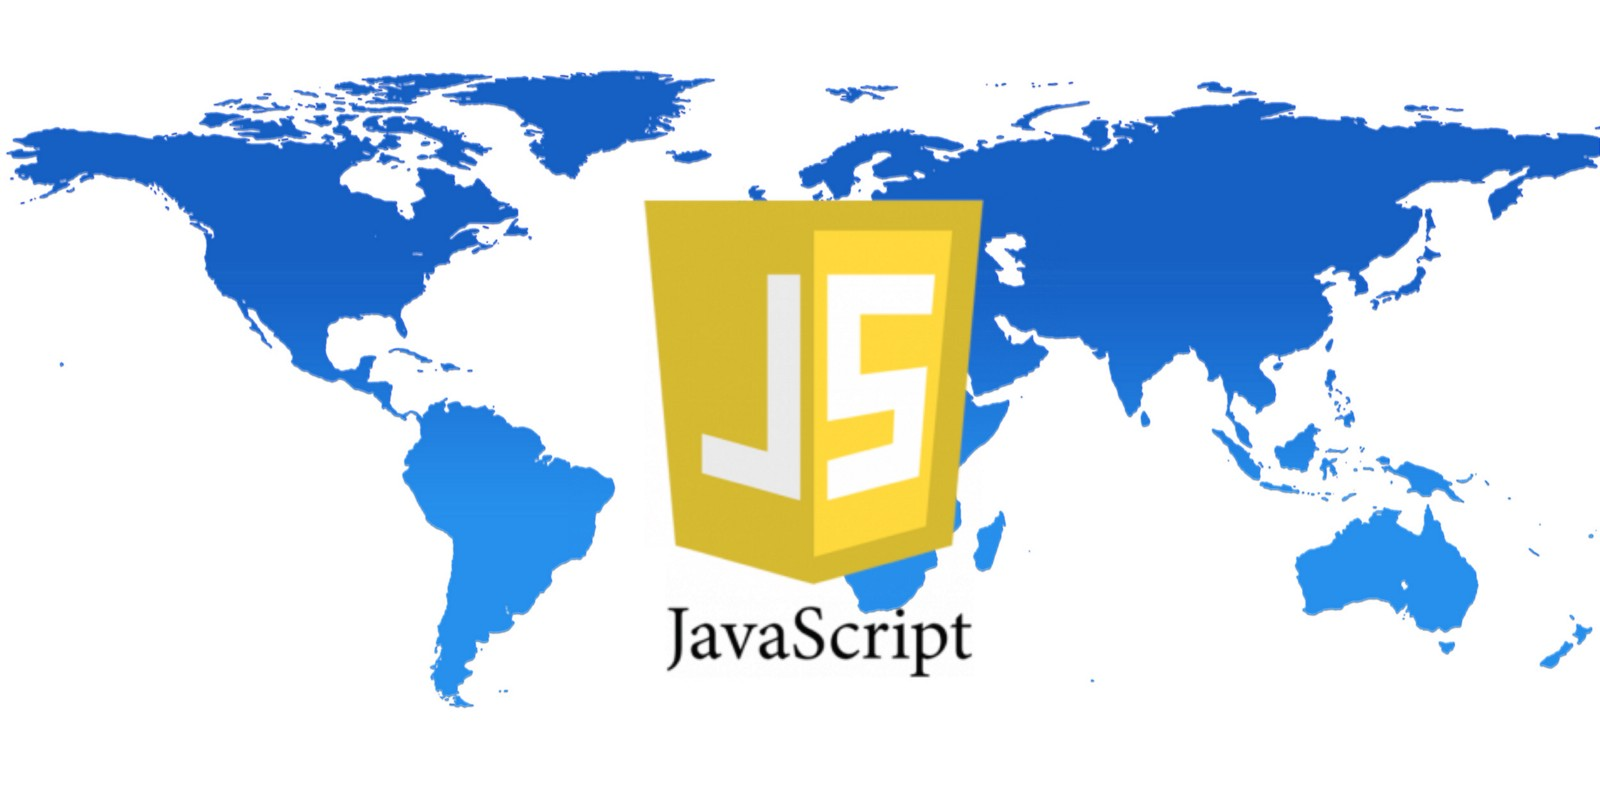 What is the future of JavaScript?